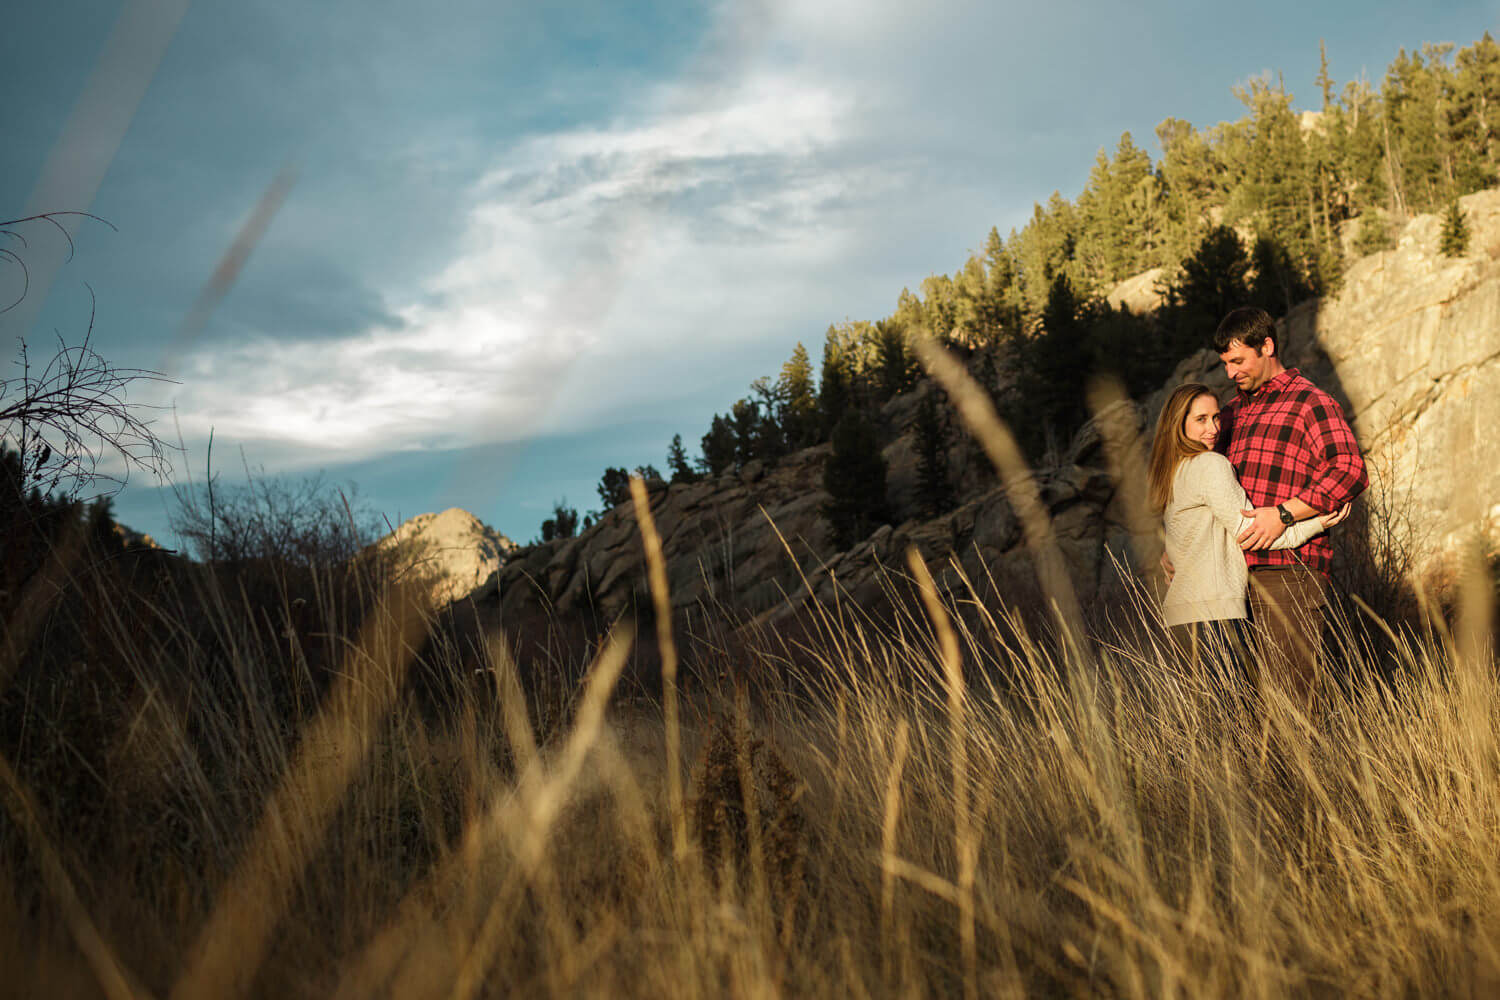 Golden hour with an engaged couple standing in the golden grass in the distance.